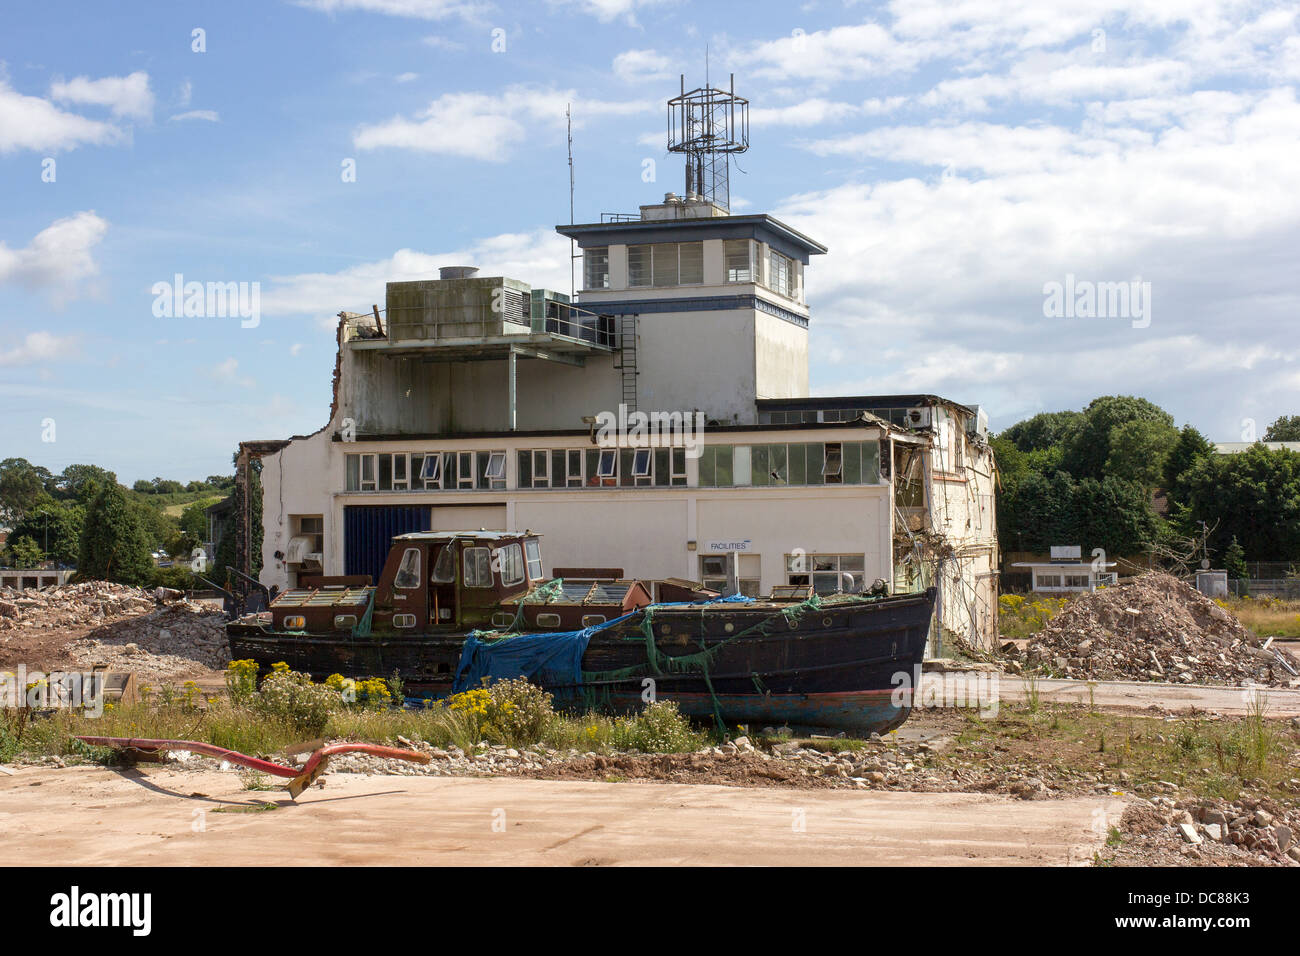 beached boat stranded on wasteland,mooring, england, english, outdoors, buoy, places, boat, tourism, daytime, riverfront, - Stock Image